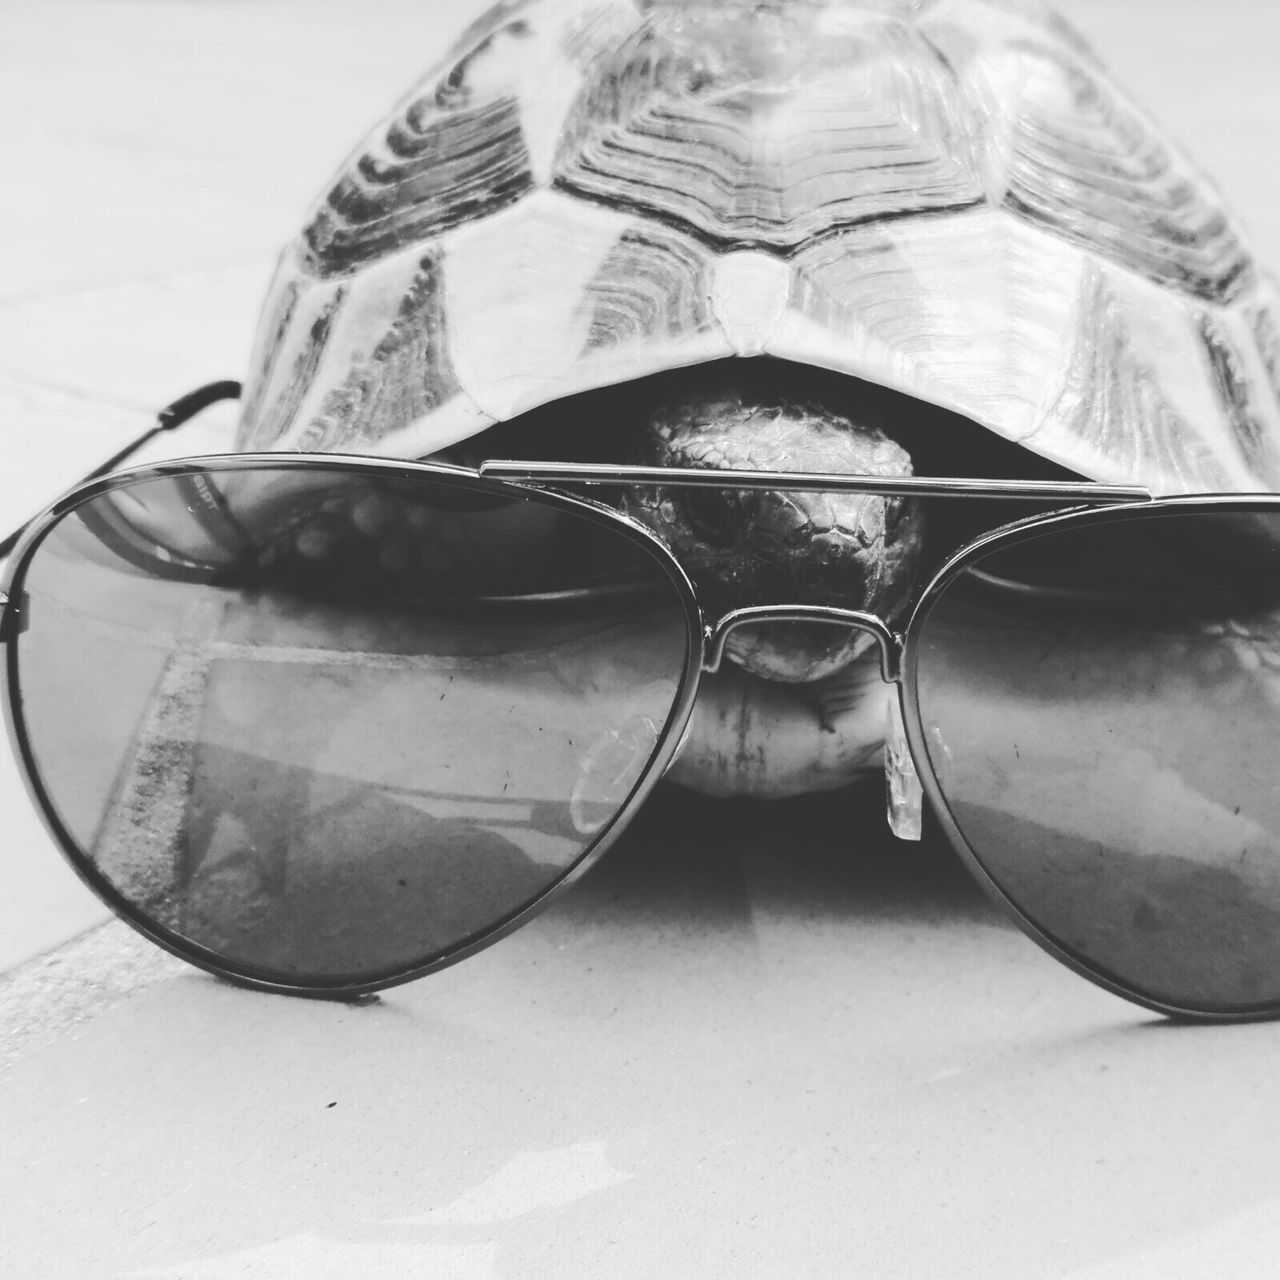 CLOSE-UP OF SUNGLASSES AGAINST BLACK AND WHITE